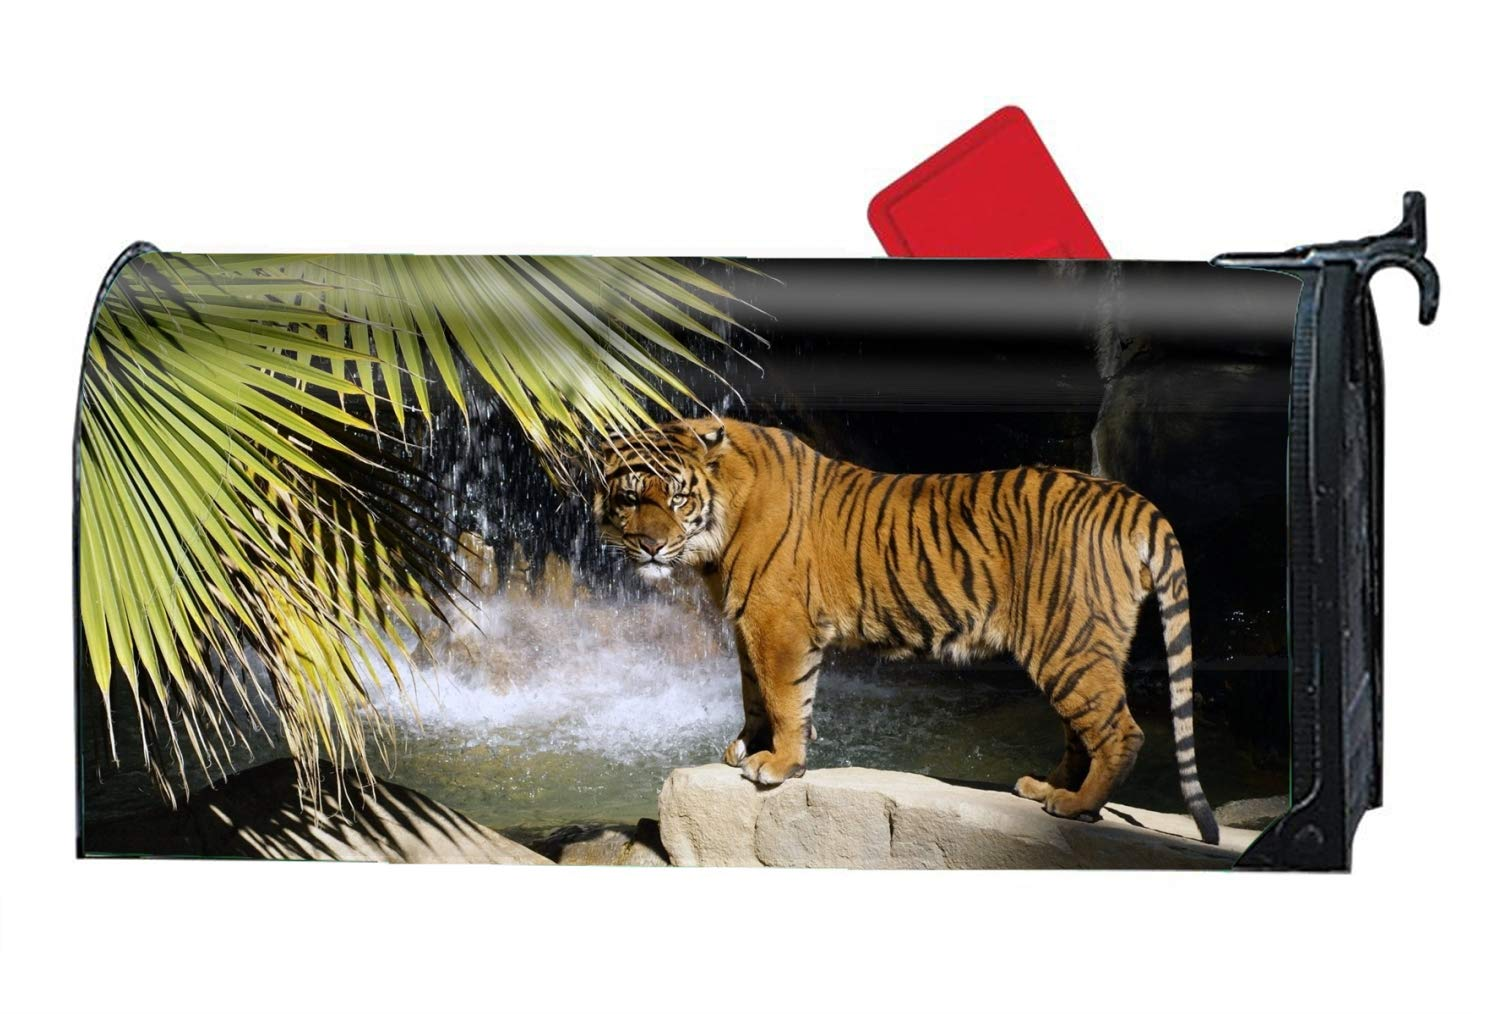 FANMIL Animal Tiger Water Cat Personalized Mailbox Cover Magnetic Summer for Standard Mailboxes